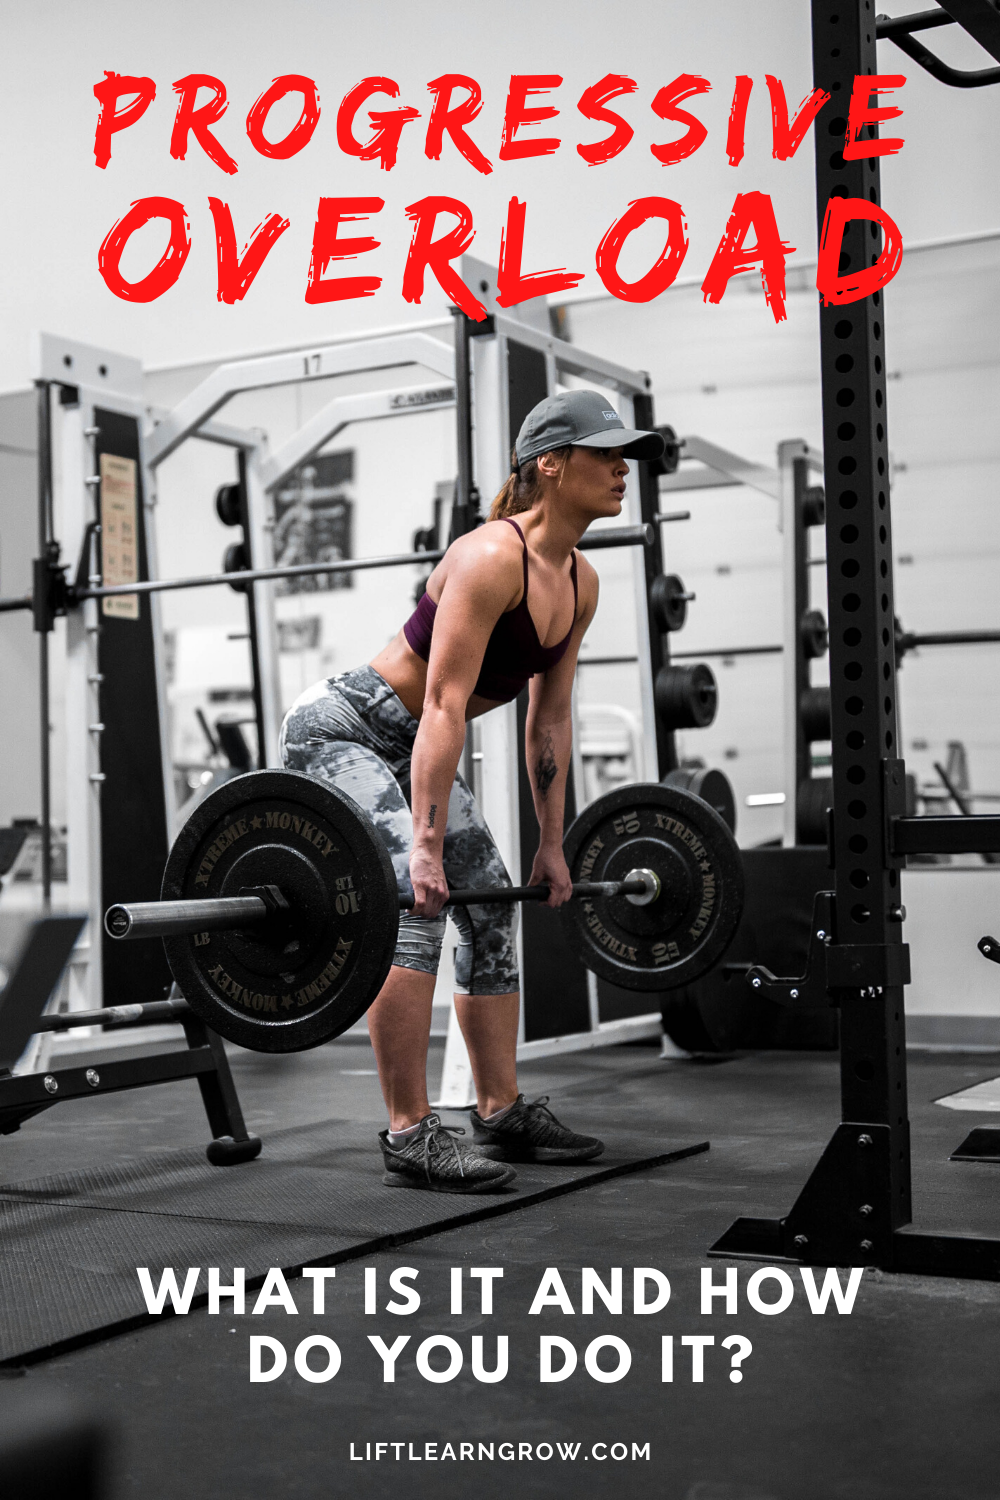 How to Get Stronger with Progressive Overload